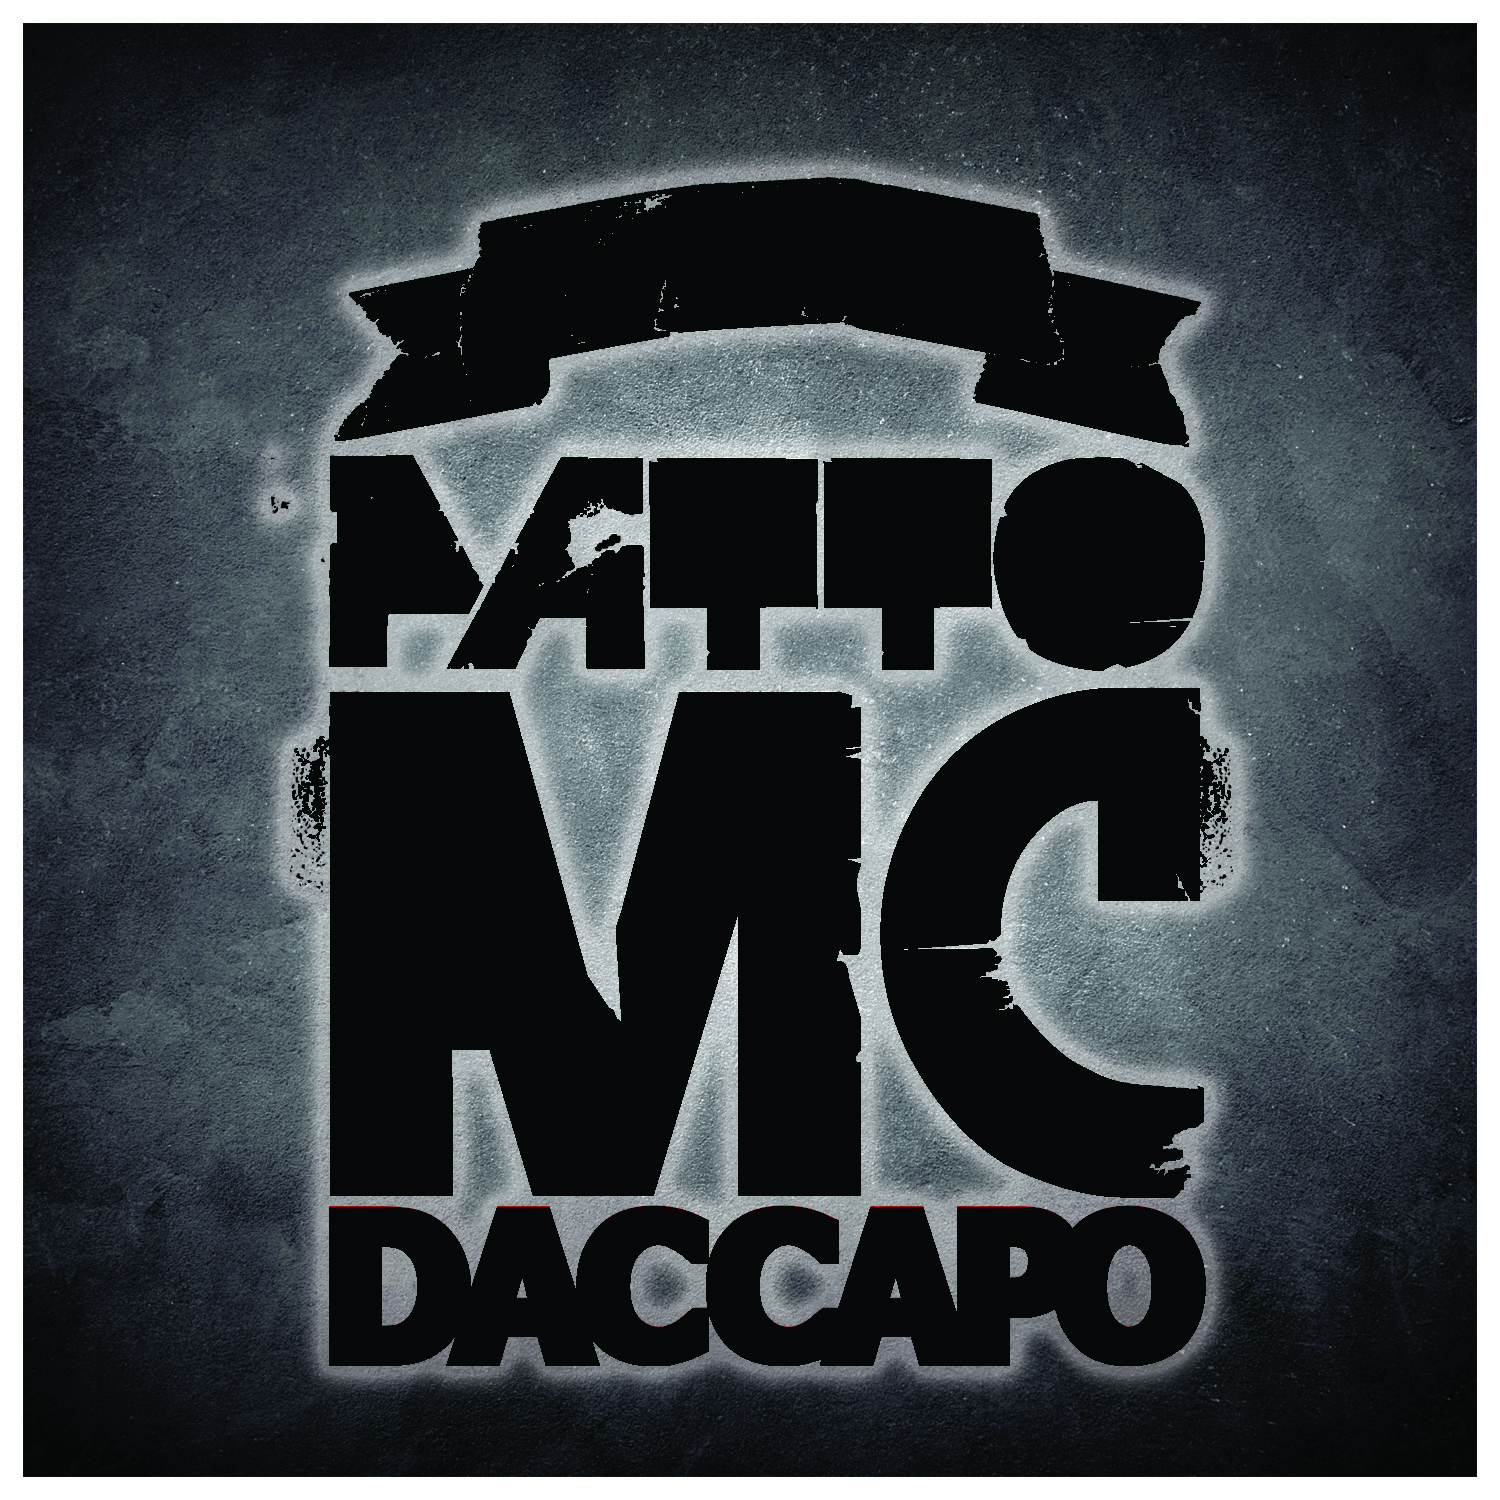 0799599872975 Patto mc - Daccapo (1500x1500)